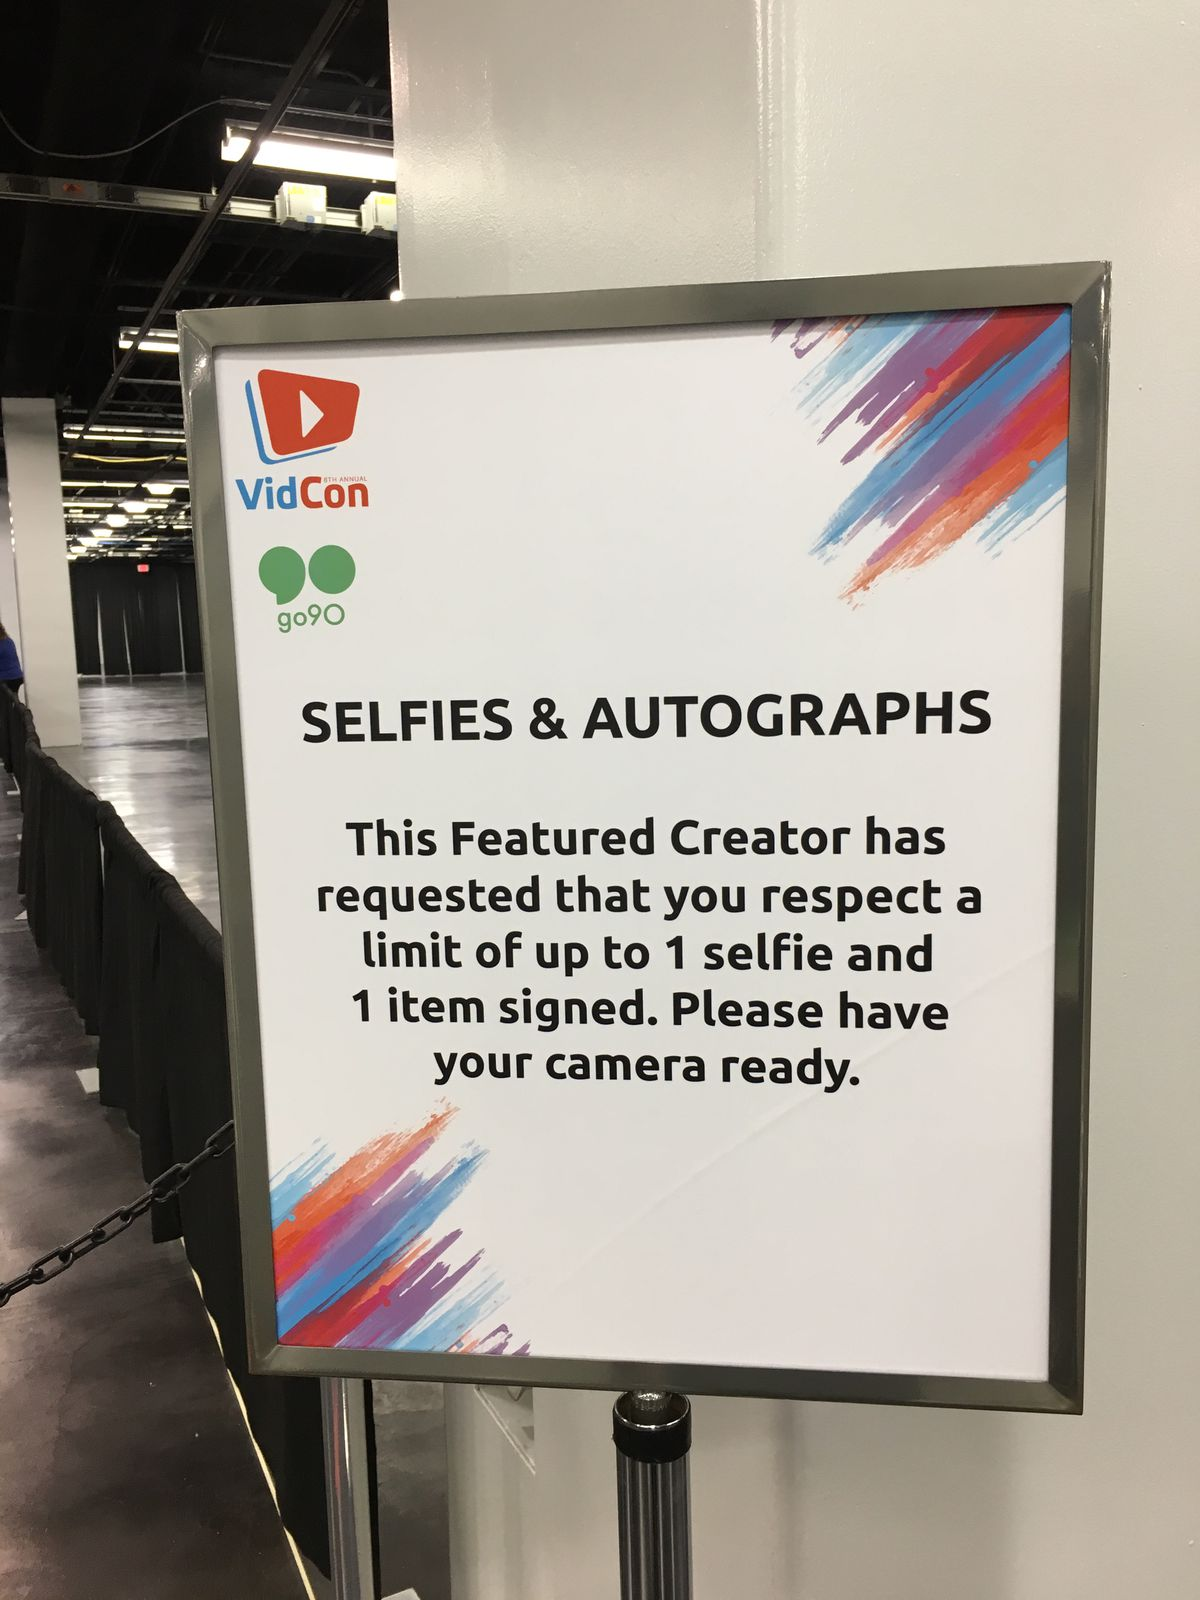 """Sign for selfies and autographs that reads, """"This Featured Creator has requested that you respect a limit of up to 1 selfie and 1 item signed. Please have your camera ready."""""""